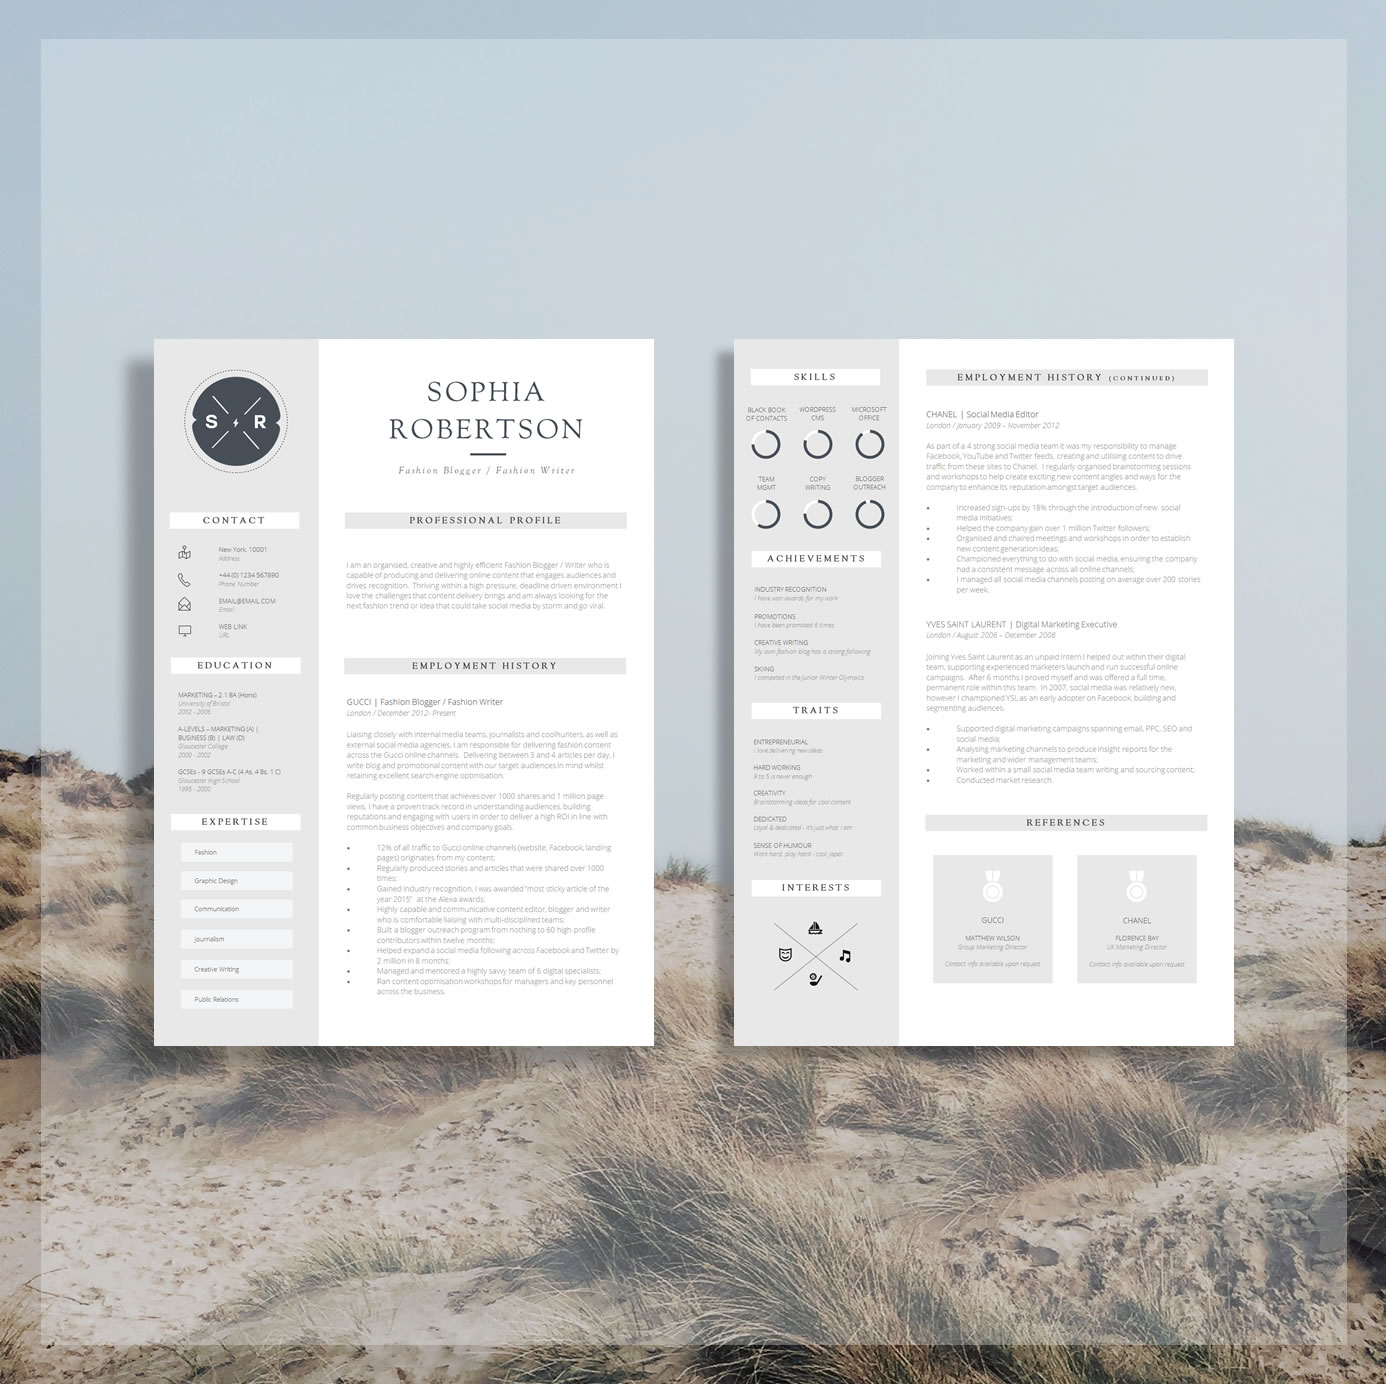 Creative Resume Template Teacher Resume Creative Cv Design Cover Letter Cv Guide For Ms Word Download Word Resume Chancery The Career